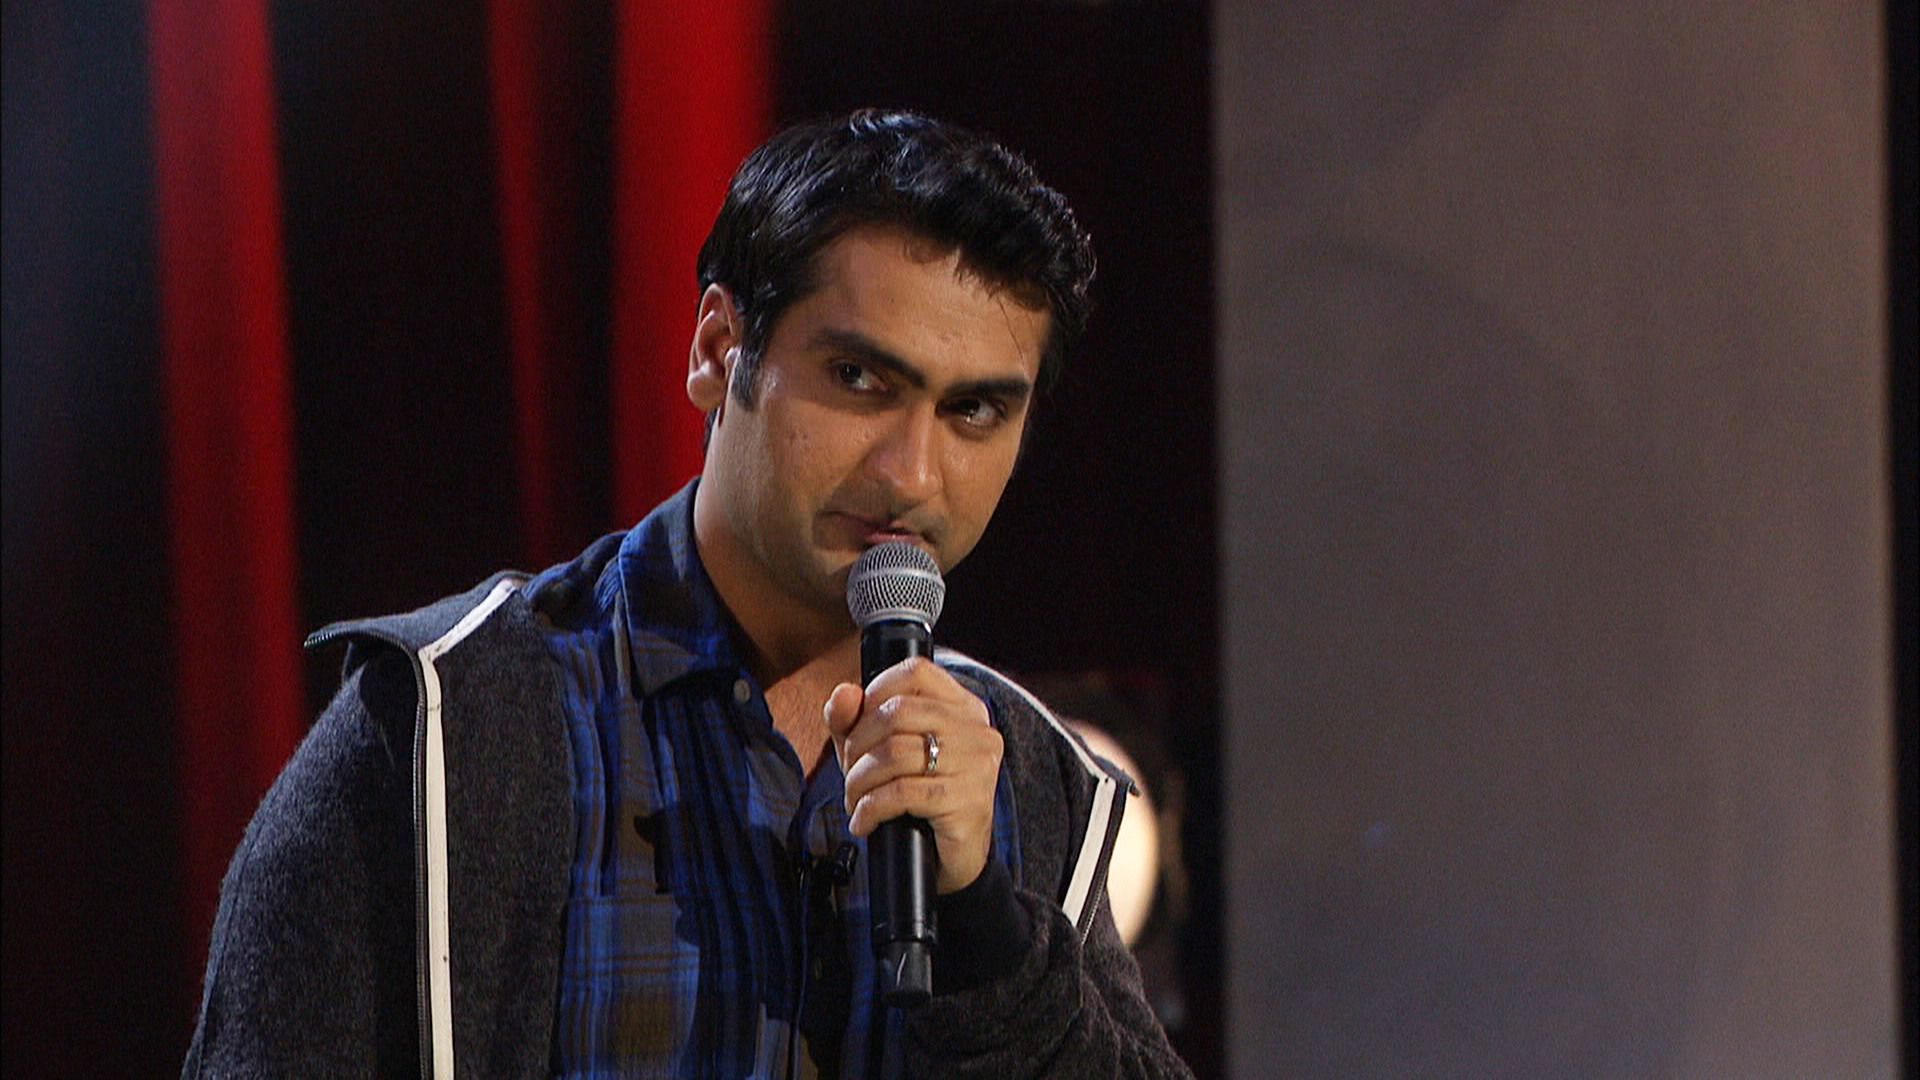 Uncensored - Kumail Nanjiani - House of Betas Pt. 2